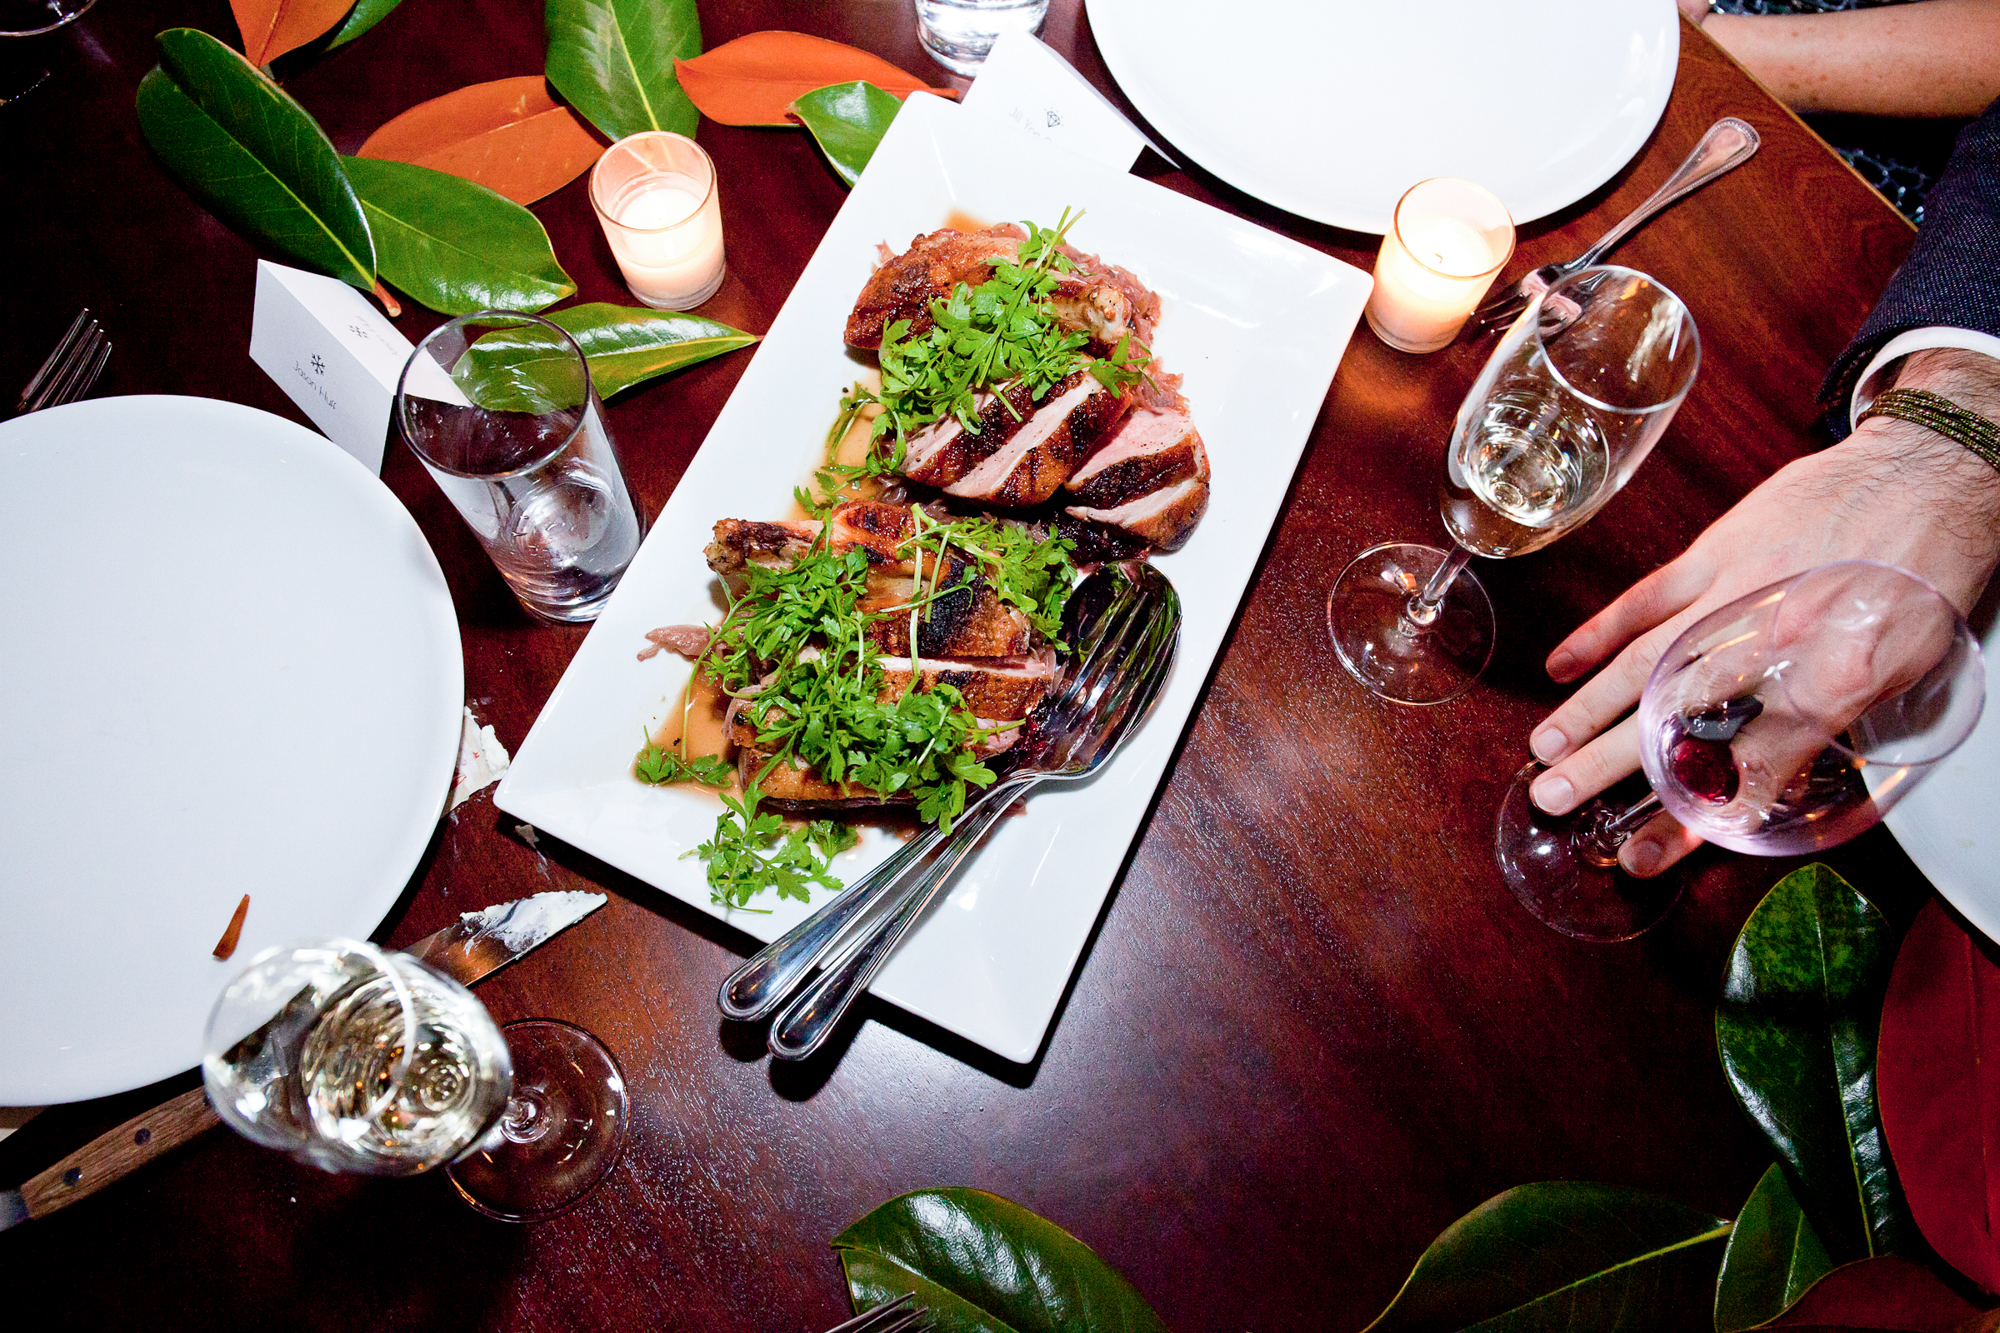 014_CarlyGaebe_SteadfastStudio_WeddingPhotography_NewYorkCity_Brooklyn_WytheHotel_Retro_Beef_TableDecor_Dinner.jpg